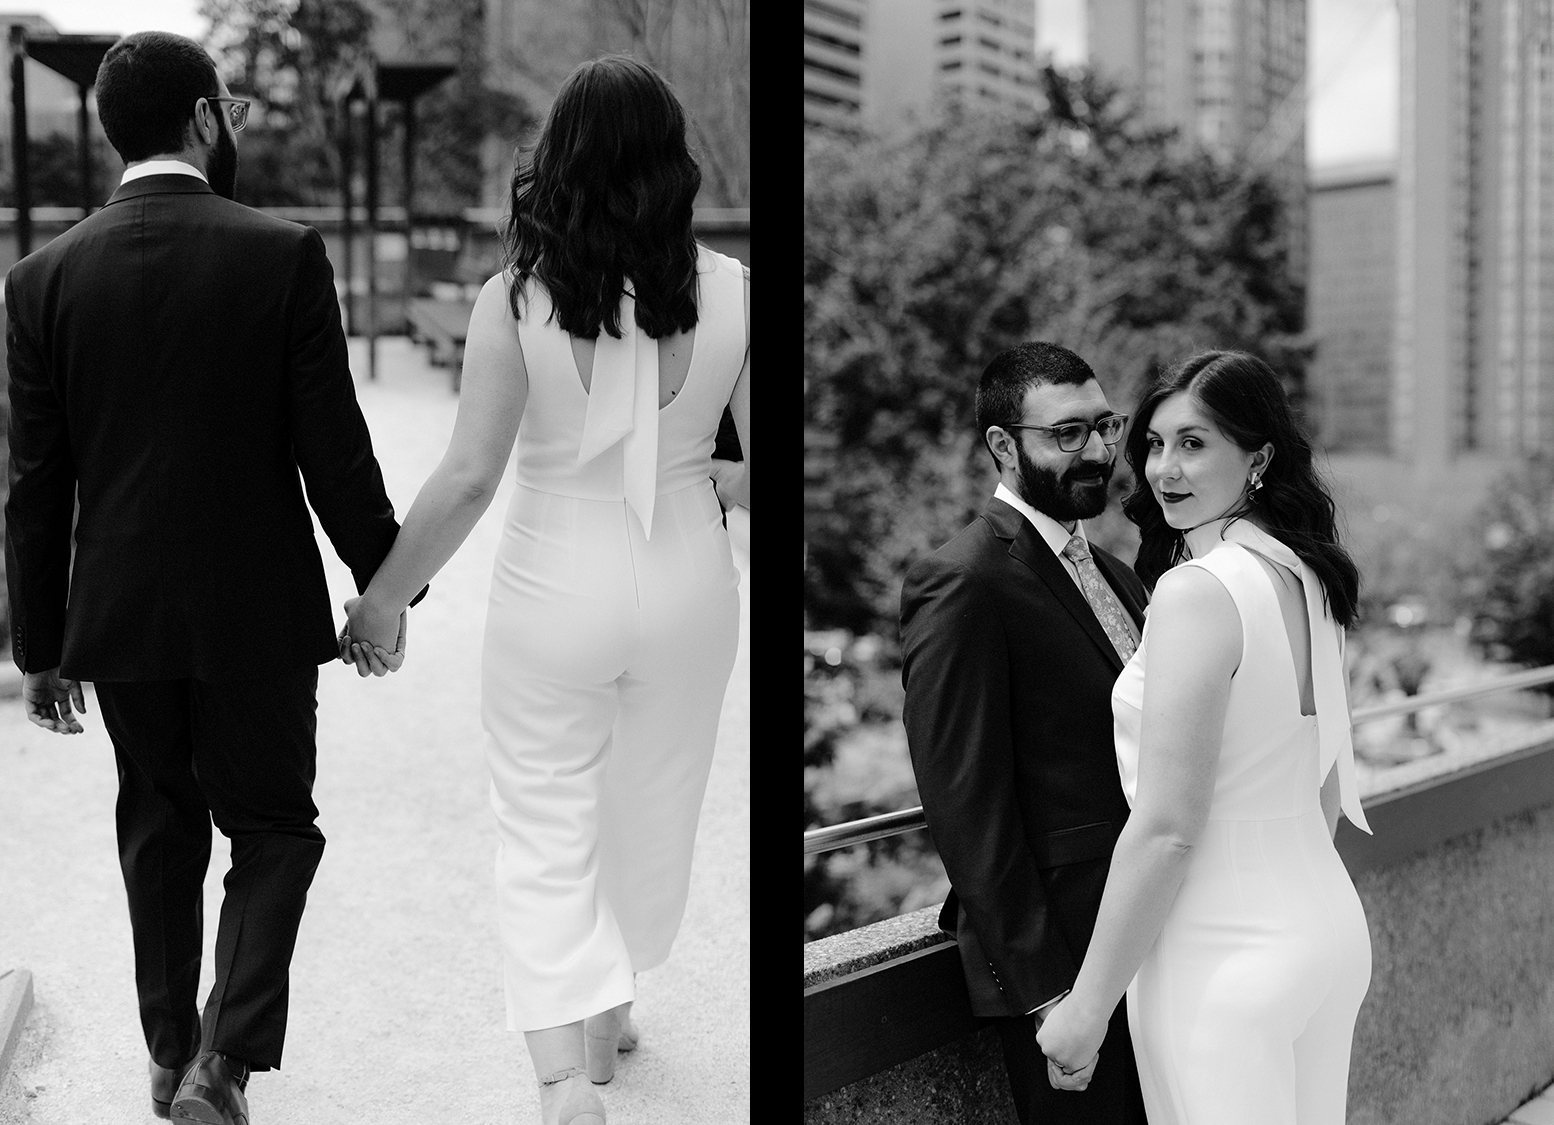 10-Intimate-Small-Toronto-City-Hall-Wedding-Osgoode-Hall-Candid-Documentary-Toronto-Wedding-Photographer-18-spread.jpg